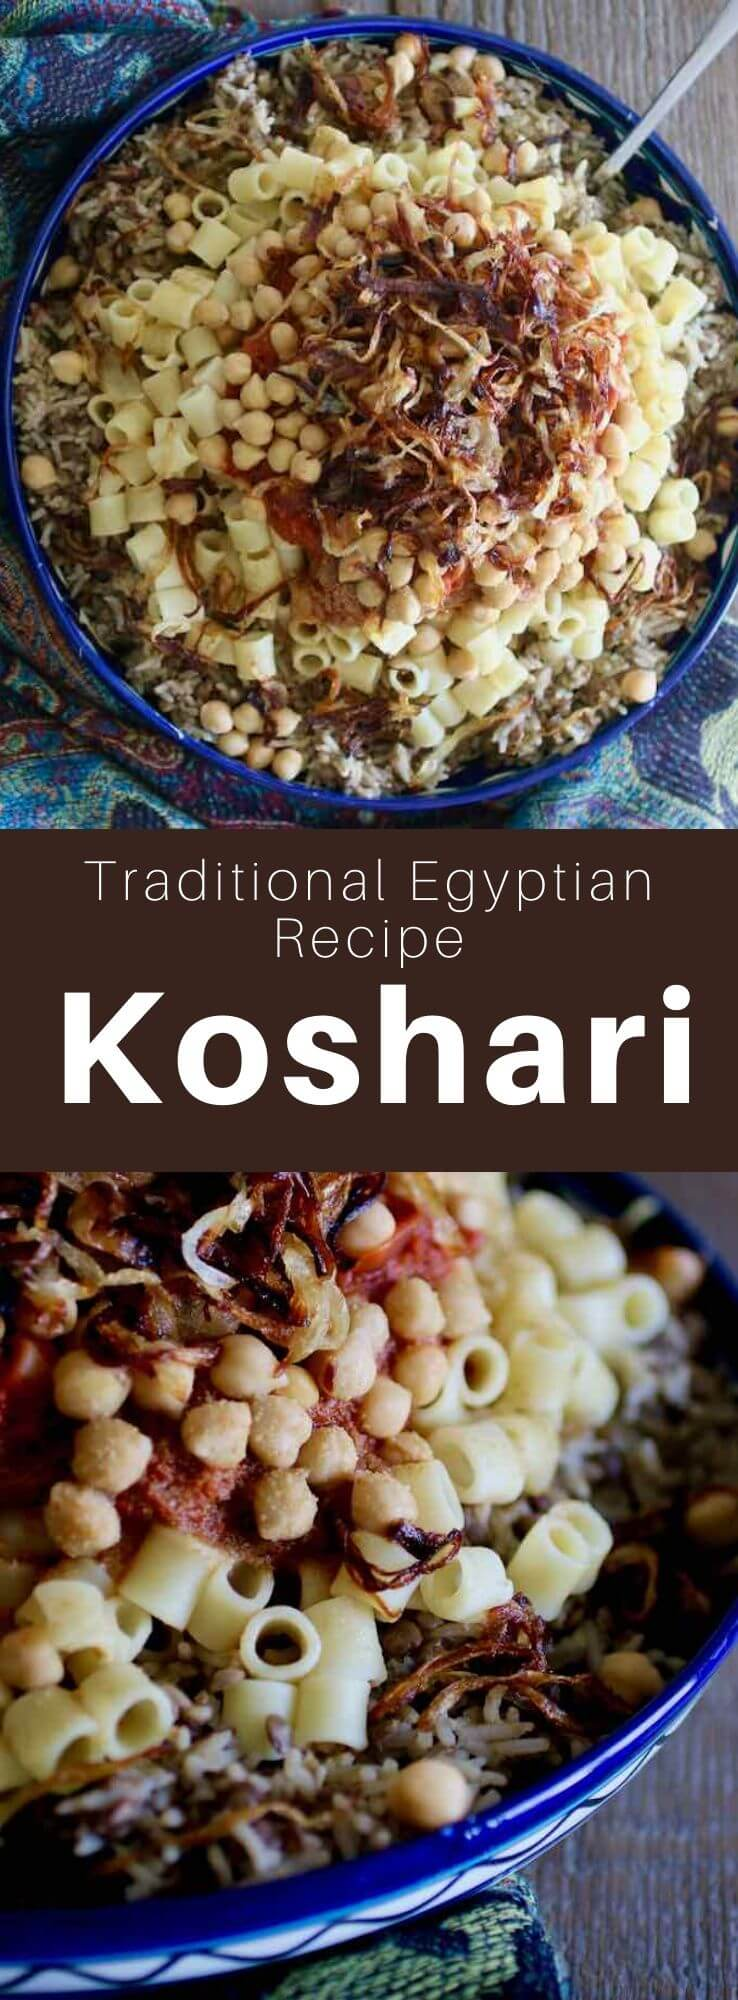 Koshari is a very popular dish in Egypt, made with rice, lentils, chickpeas and macaroni, topped with a spicy tomato sauce and fried onions. #Egypt #EgyptianCuisine #EgyptianFood #EgyptianRecipe #WorldCuisine #196flavors